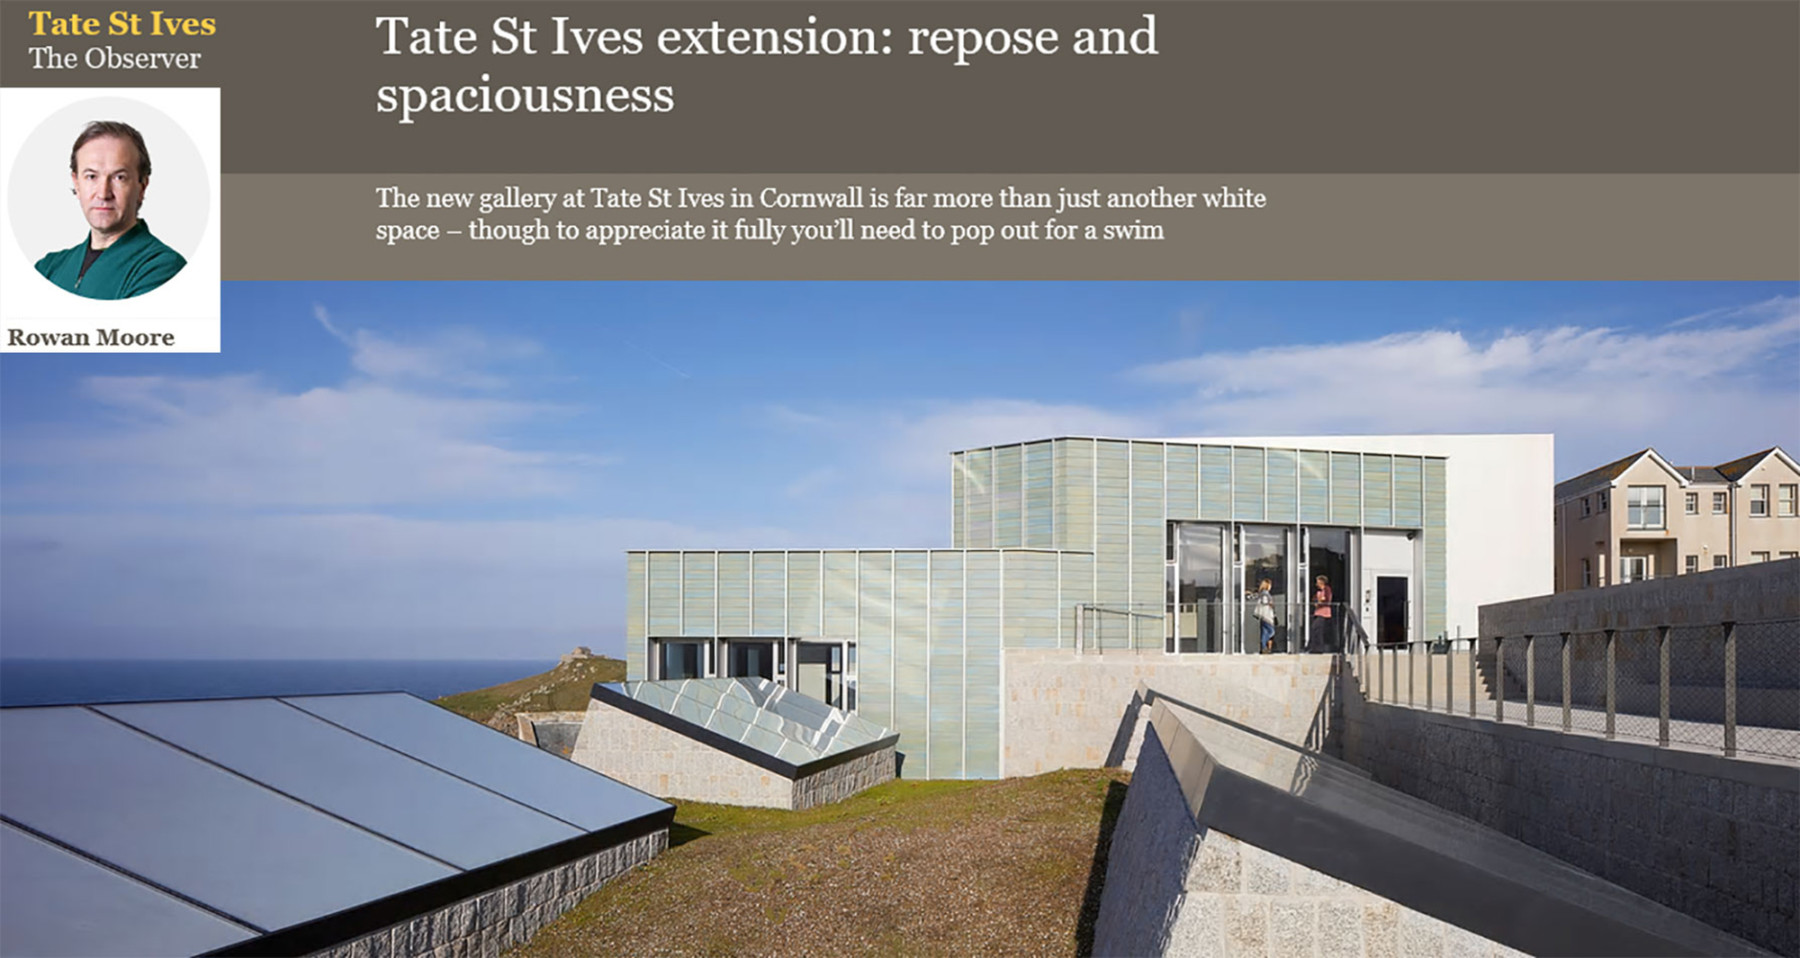 Jamie-Fobert-Architects-Observer-Rowan-Moore-Online-Magazine-Tate-St-Ives-Cultural-Gallery-Modern-Contemporary-News-Project-Press-Article